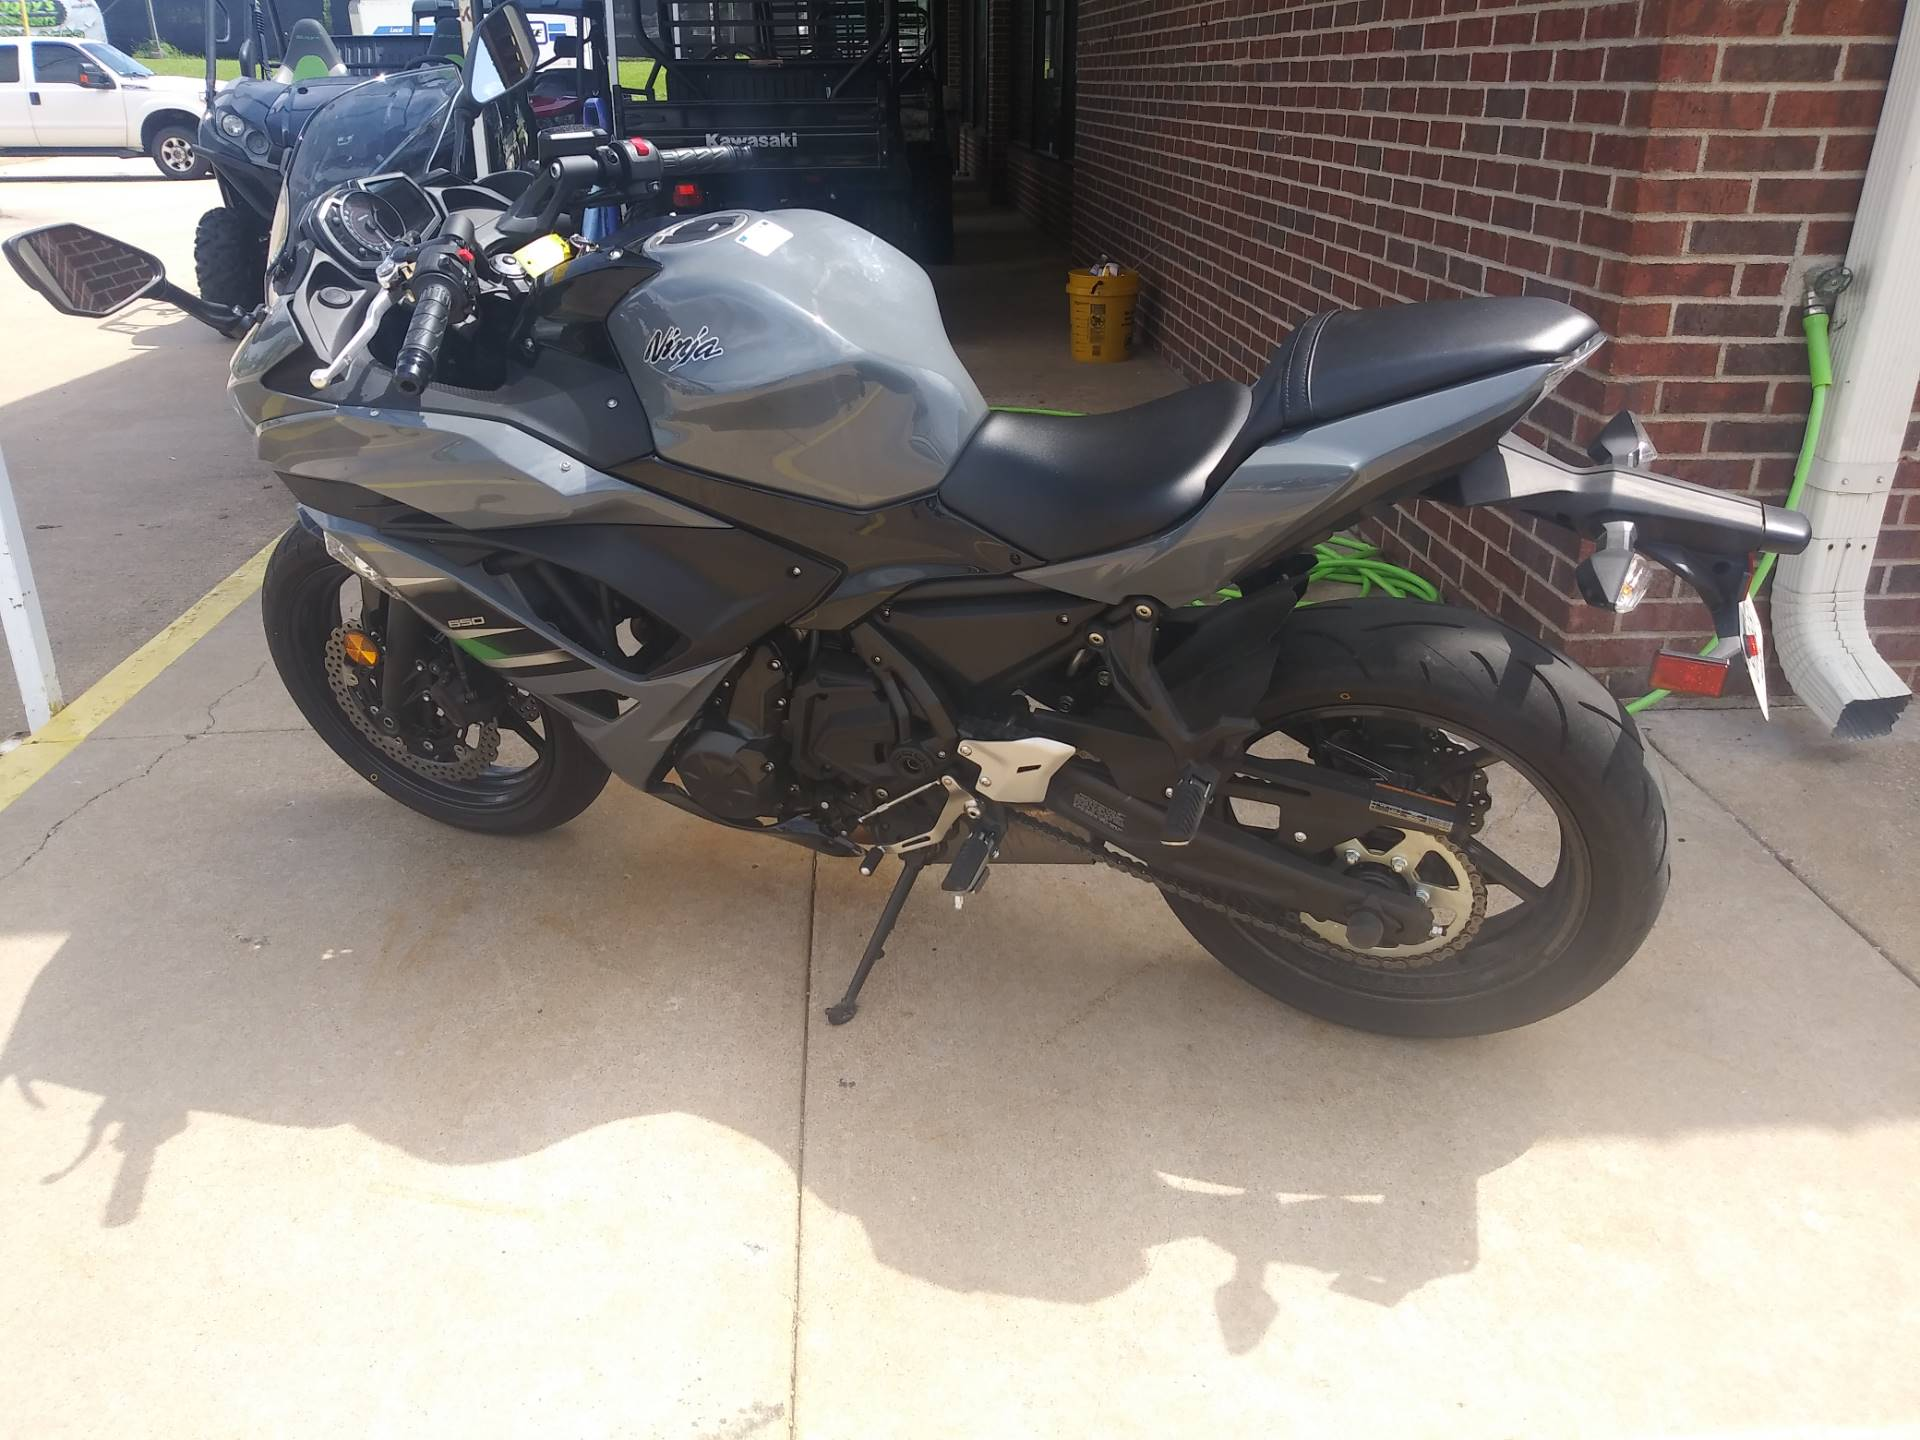 2018 Kawasaki Ninja 650 in Broken Arrow, Oklahoma